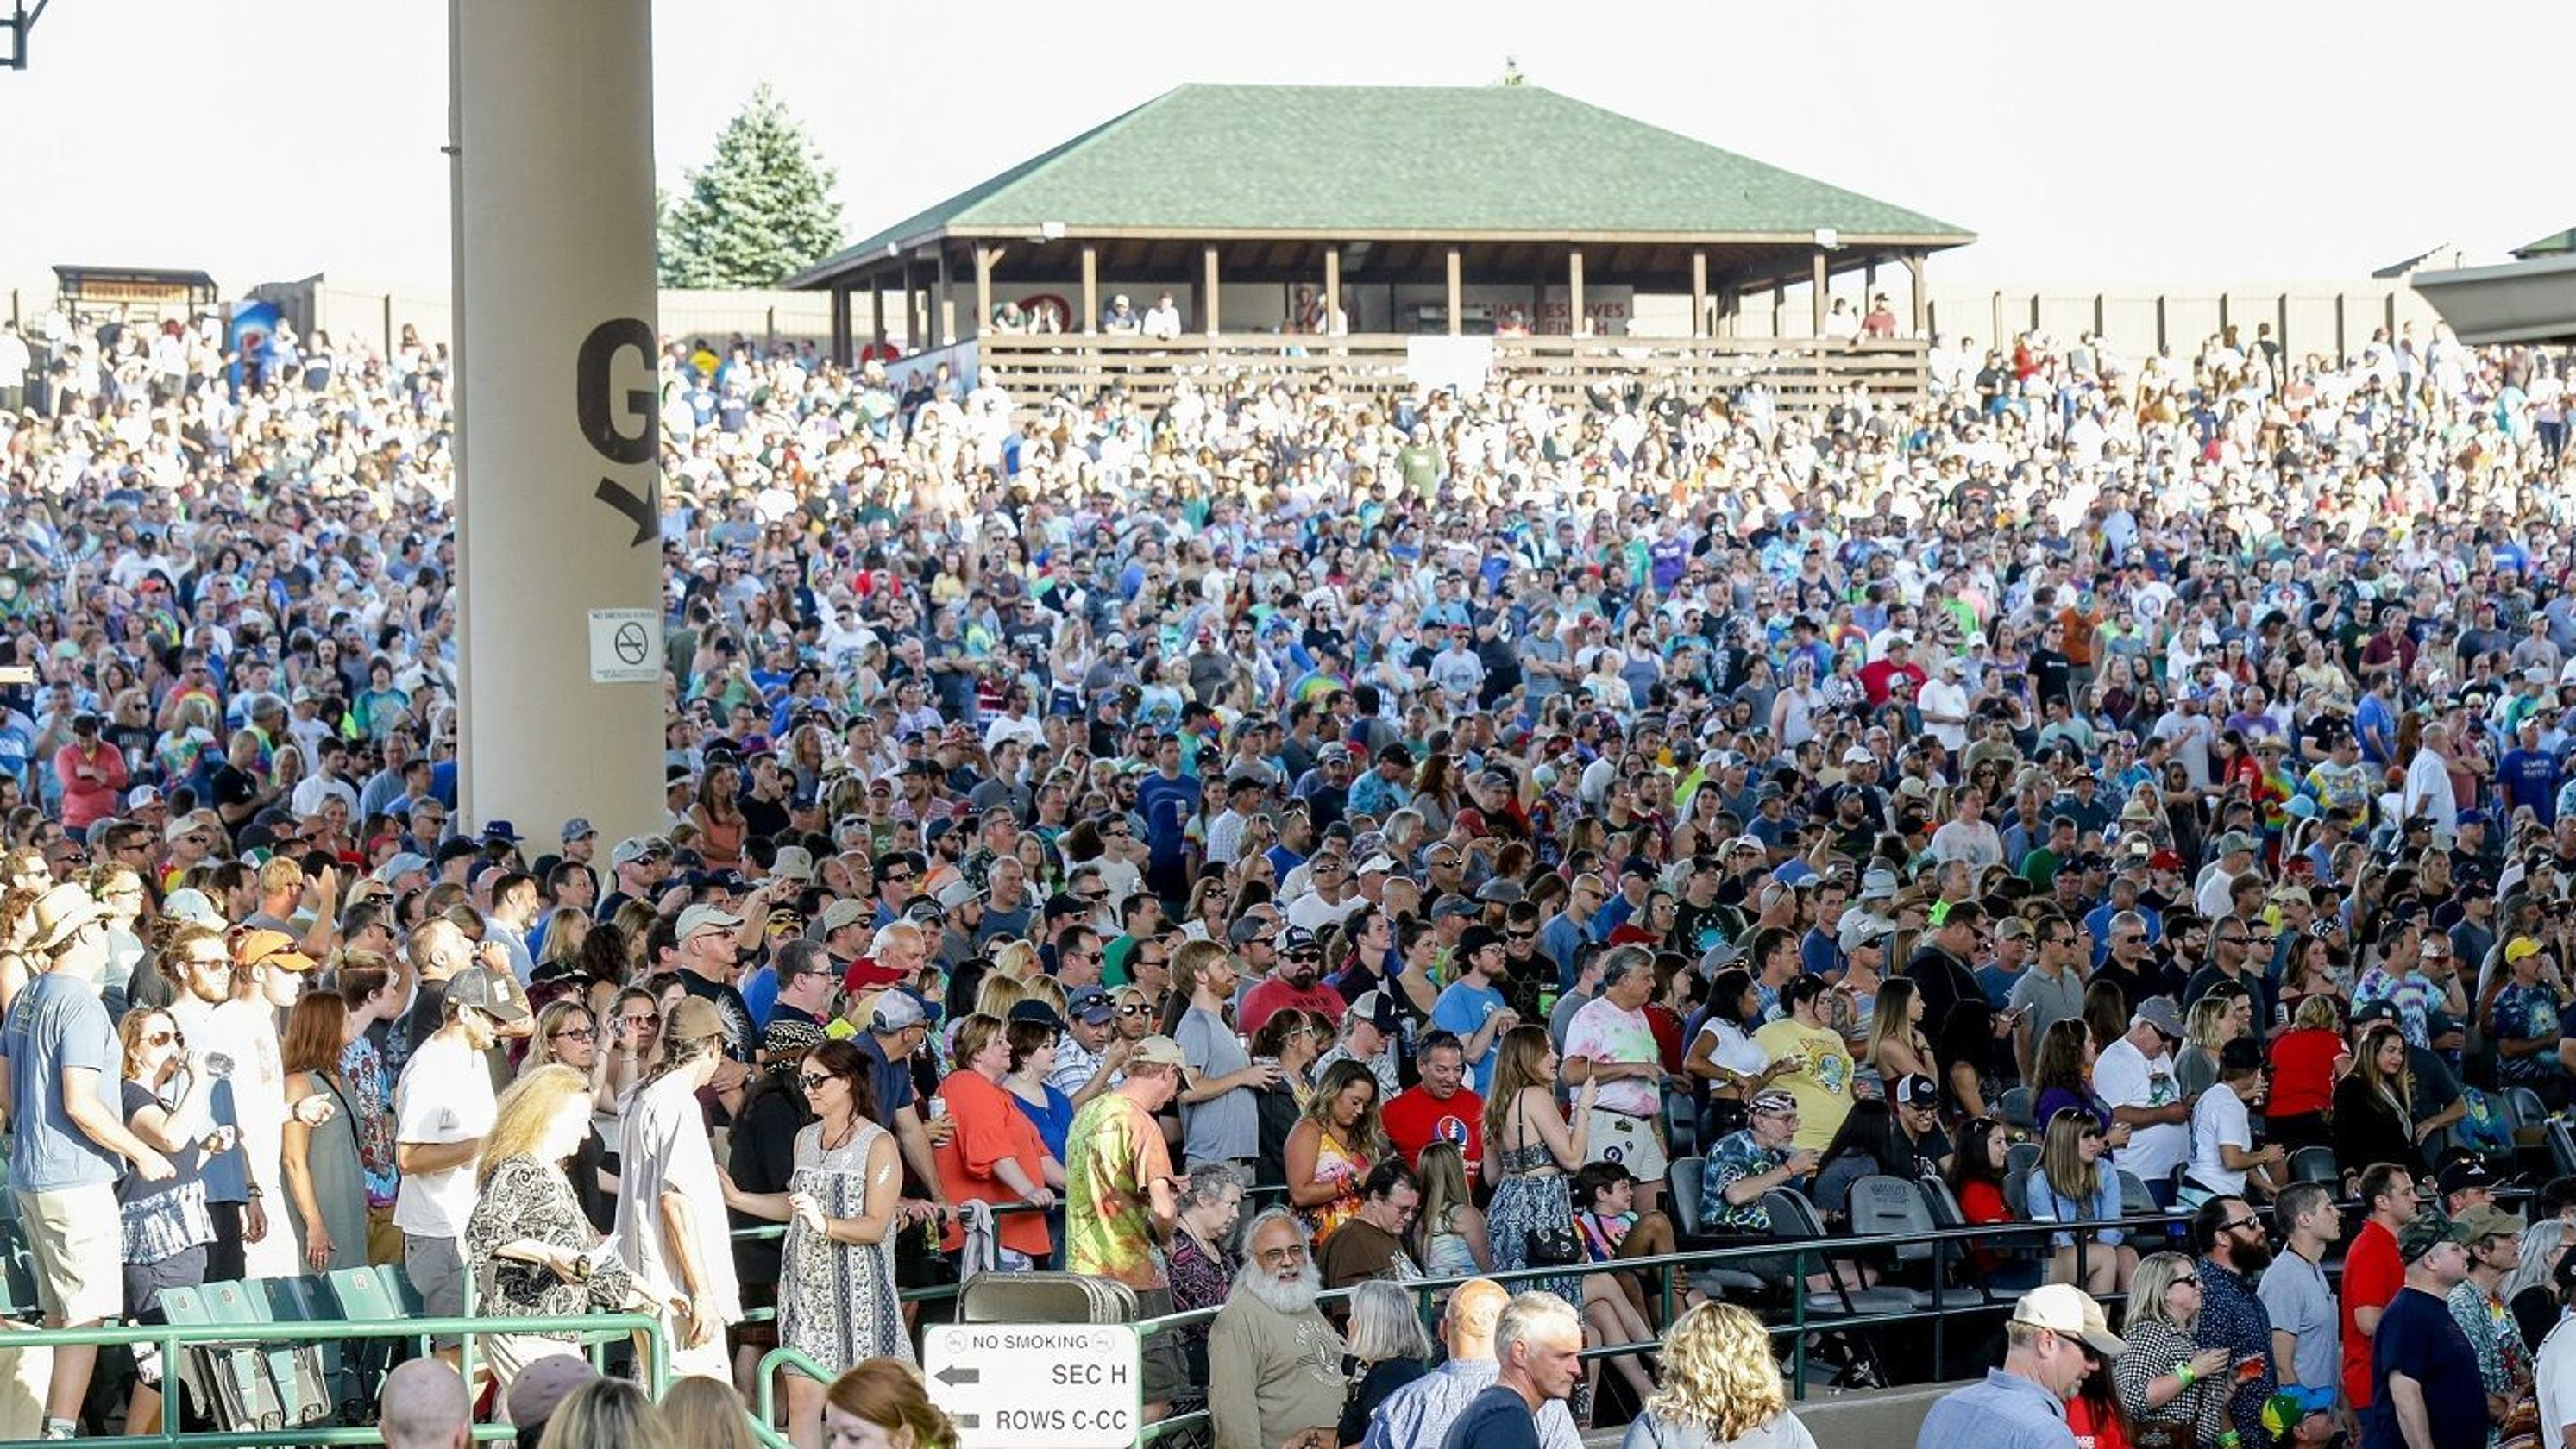 Ruoff concert venue offers season pass for lawn seating